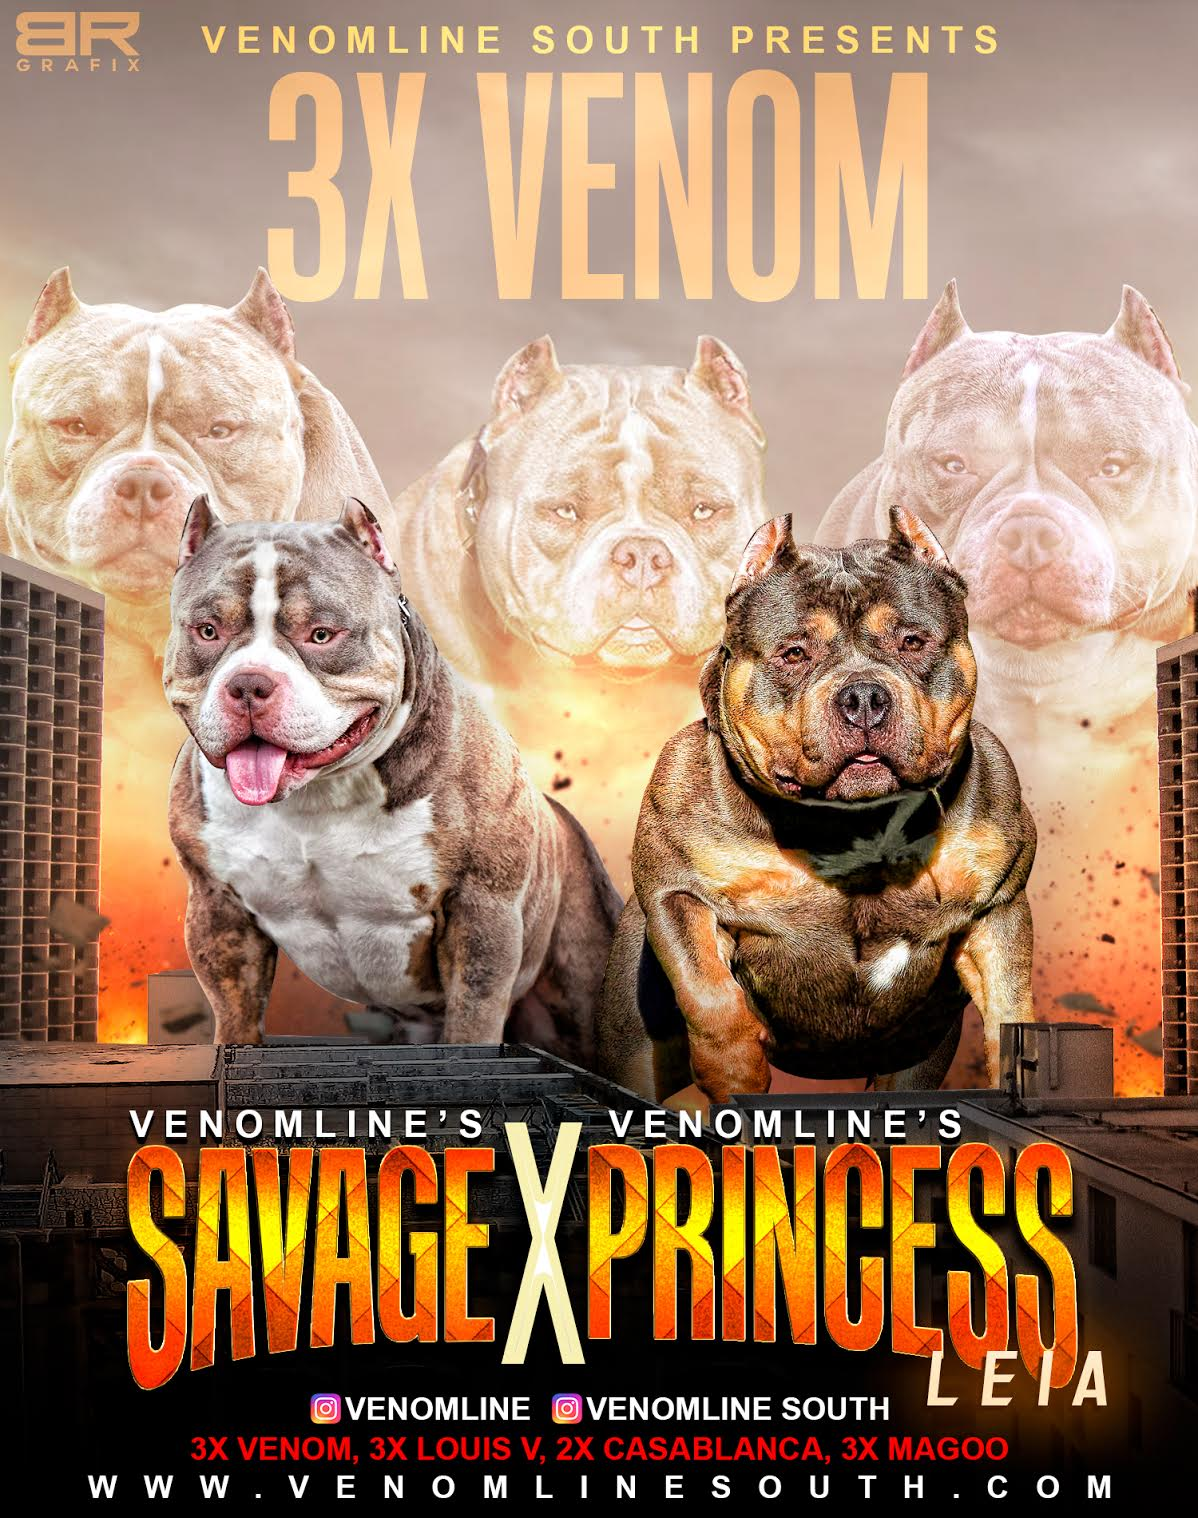 American bully puppies, american bully puppies for sale, Venomline, pocket bully, tri color, extreme, bully kennels, breeders, puppies, for sale